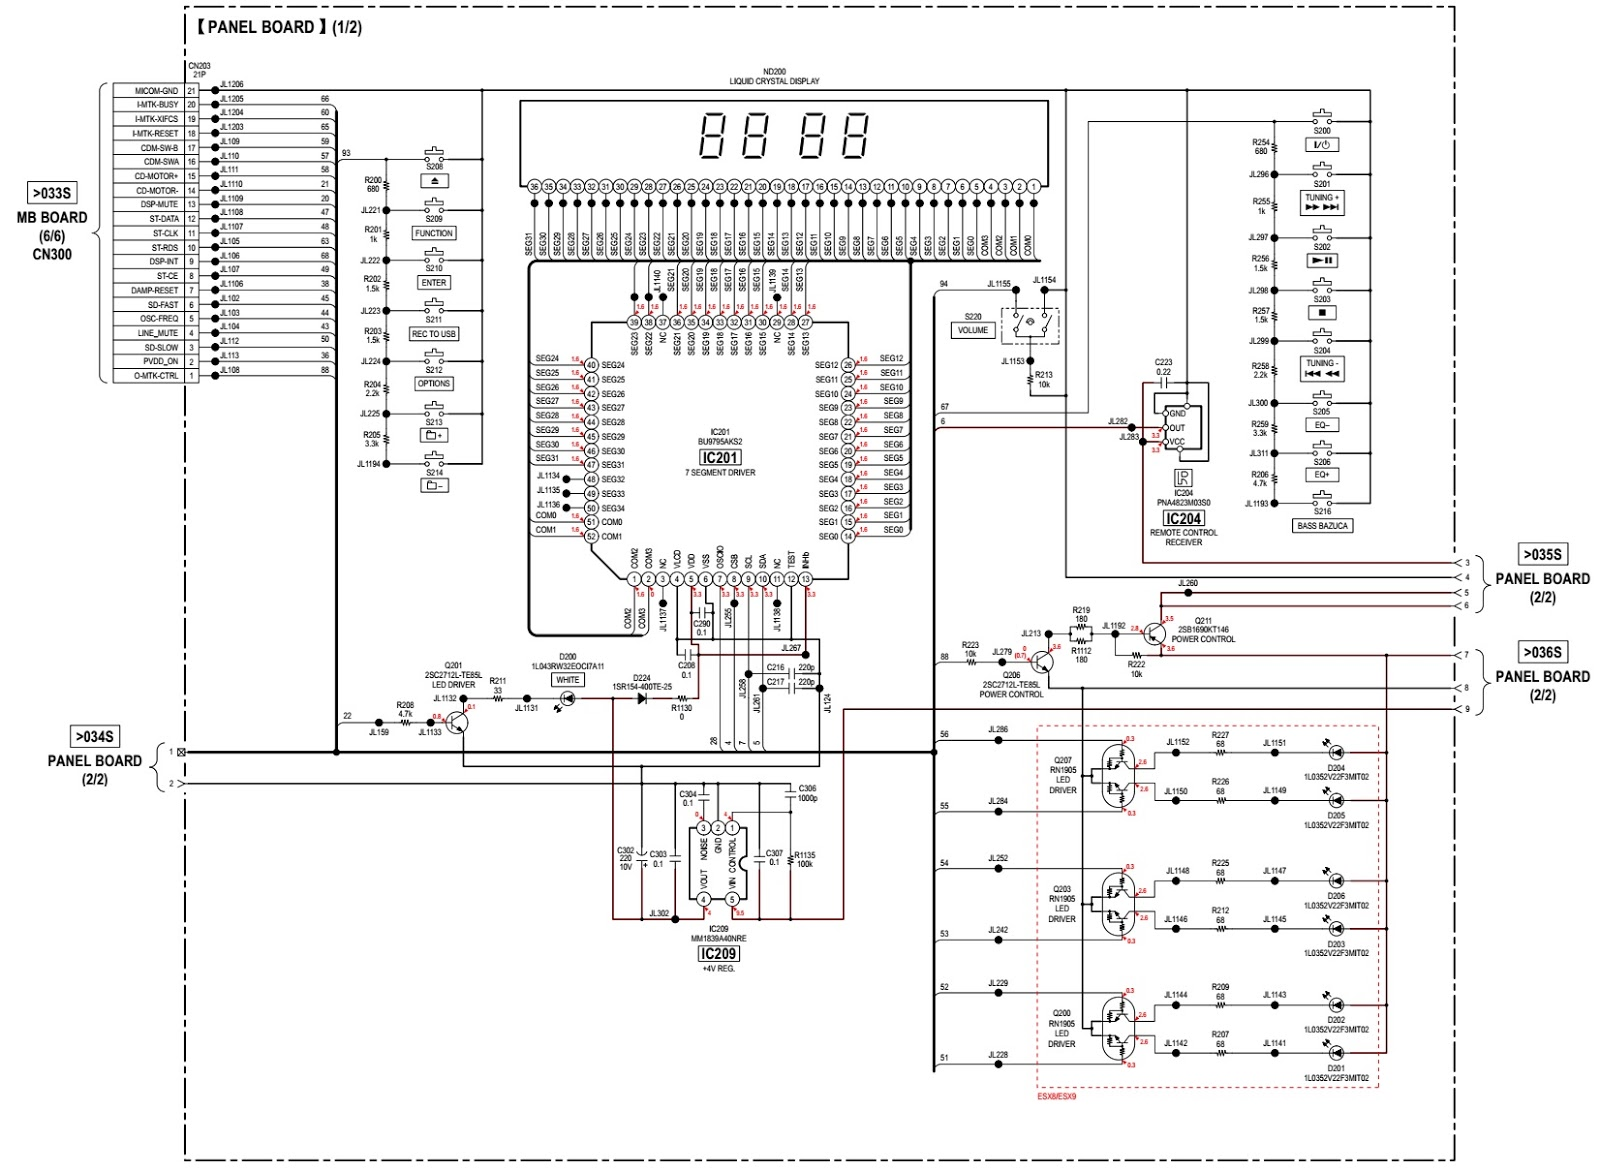 Sony Hcd Esx6 Esx8 Esx9 Compact Disc Receiver Smps And Front Block Diagram Iphone 5 Panel Schematic